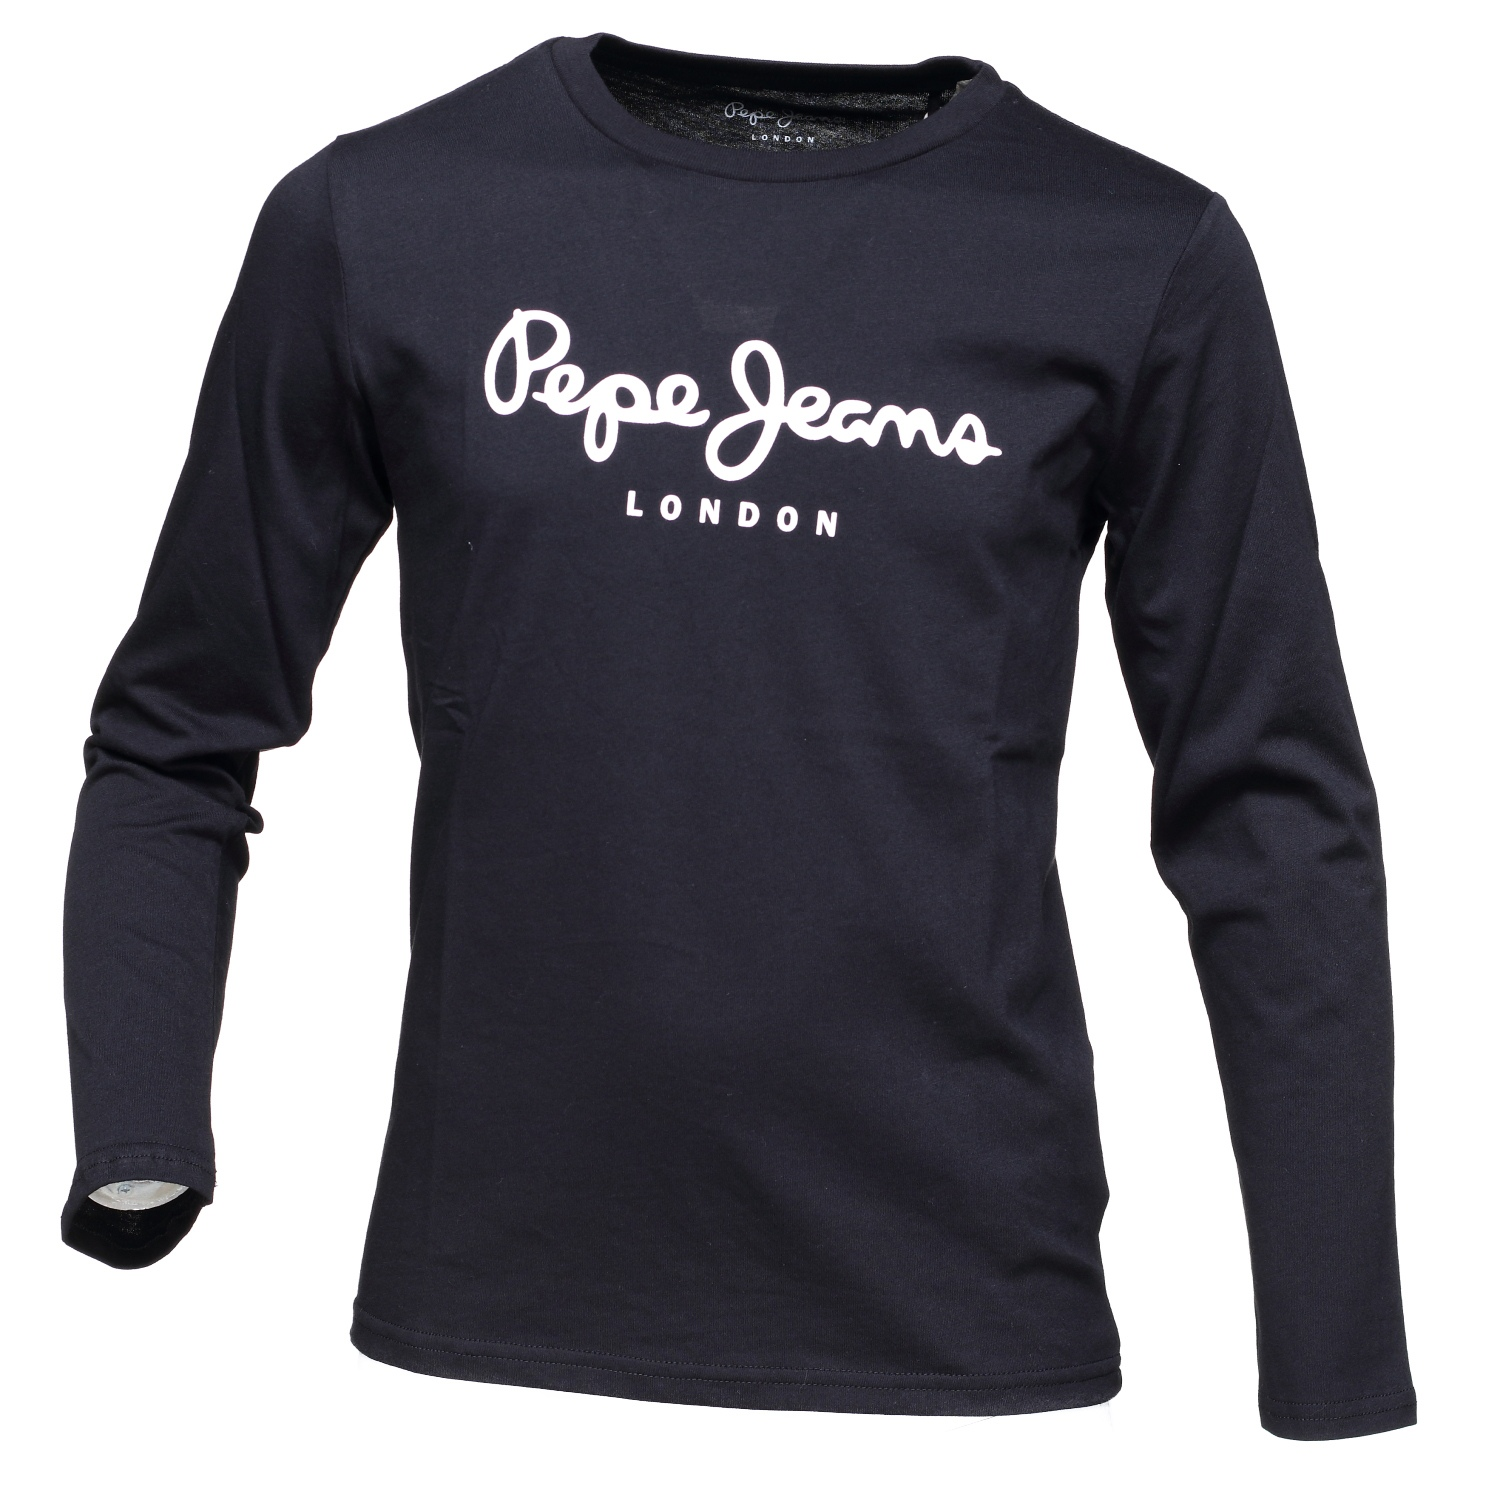 http://www.leadermode.com/126141/pepe-jeans-new-herman-jr-pb501010-999-black.jpg